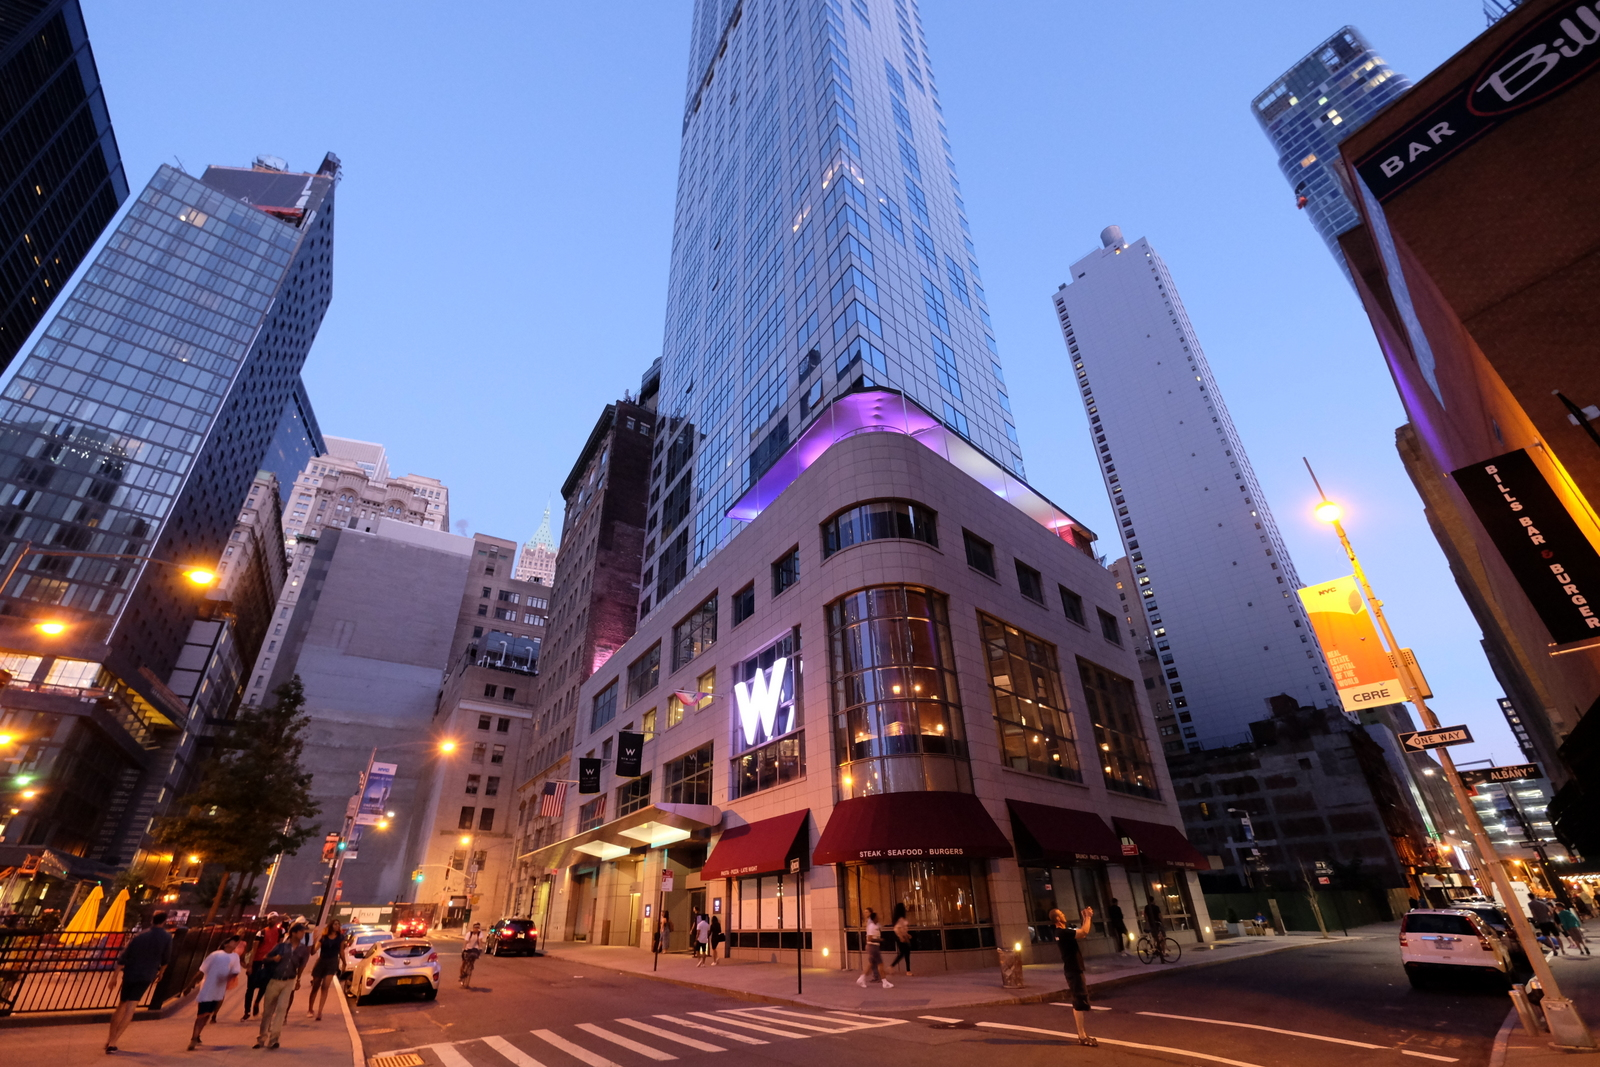 The W Hotel Downtown has a great location in lower Manhattan. JIM BYERS PHOTO